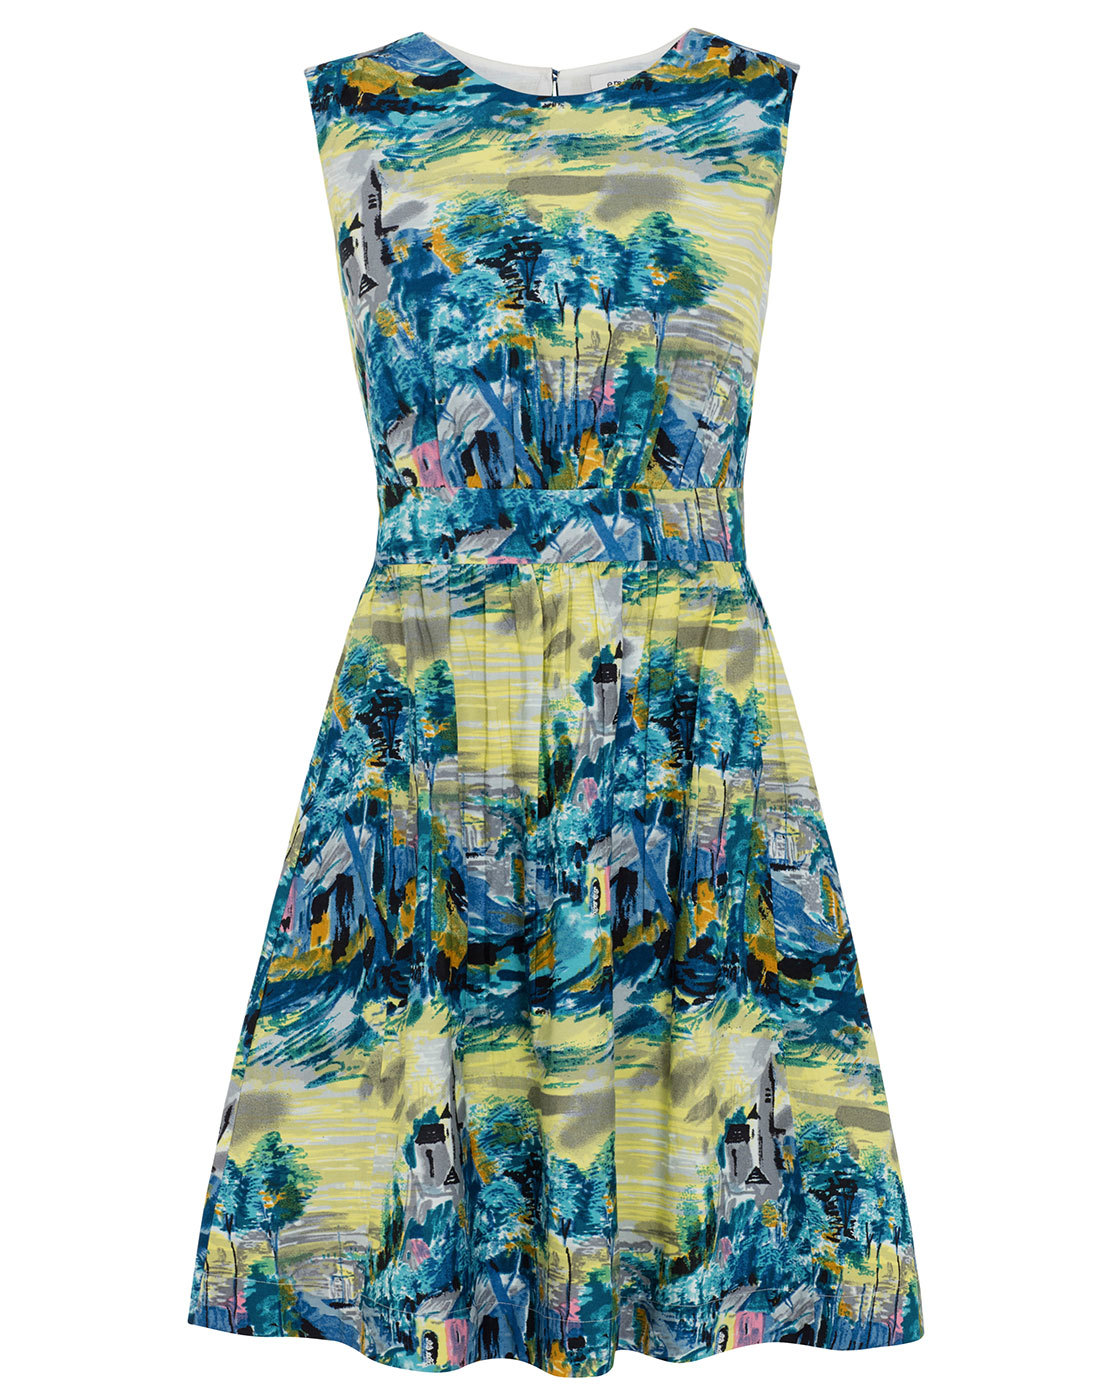 Painted Tuscan Landscape EMILY AND FIN Lucy Dress